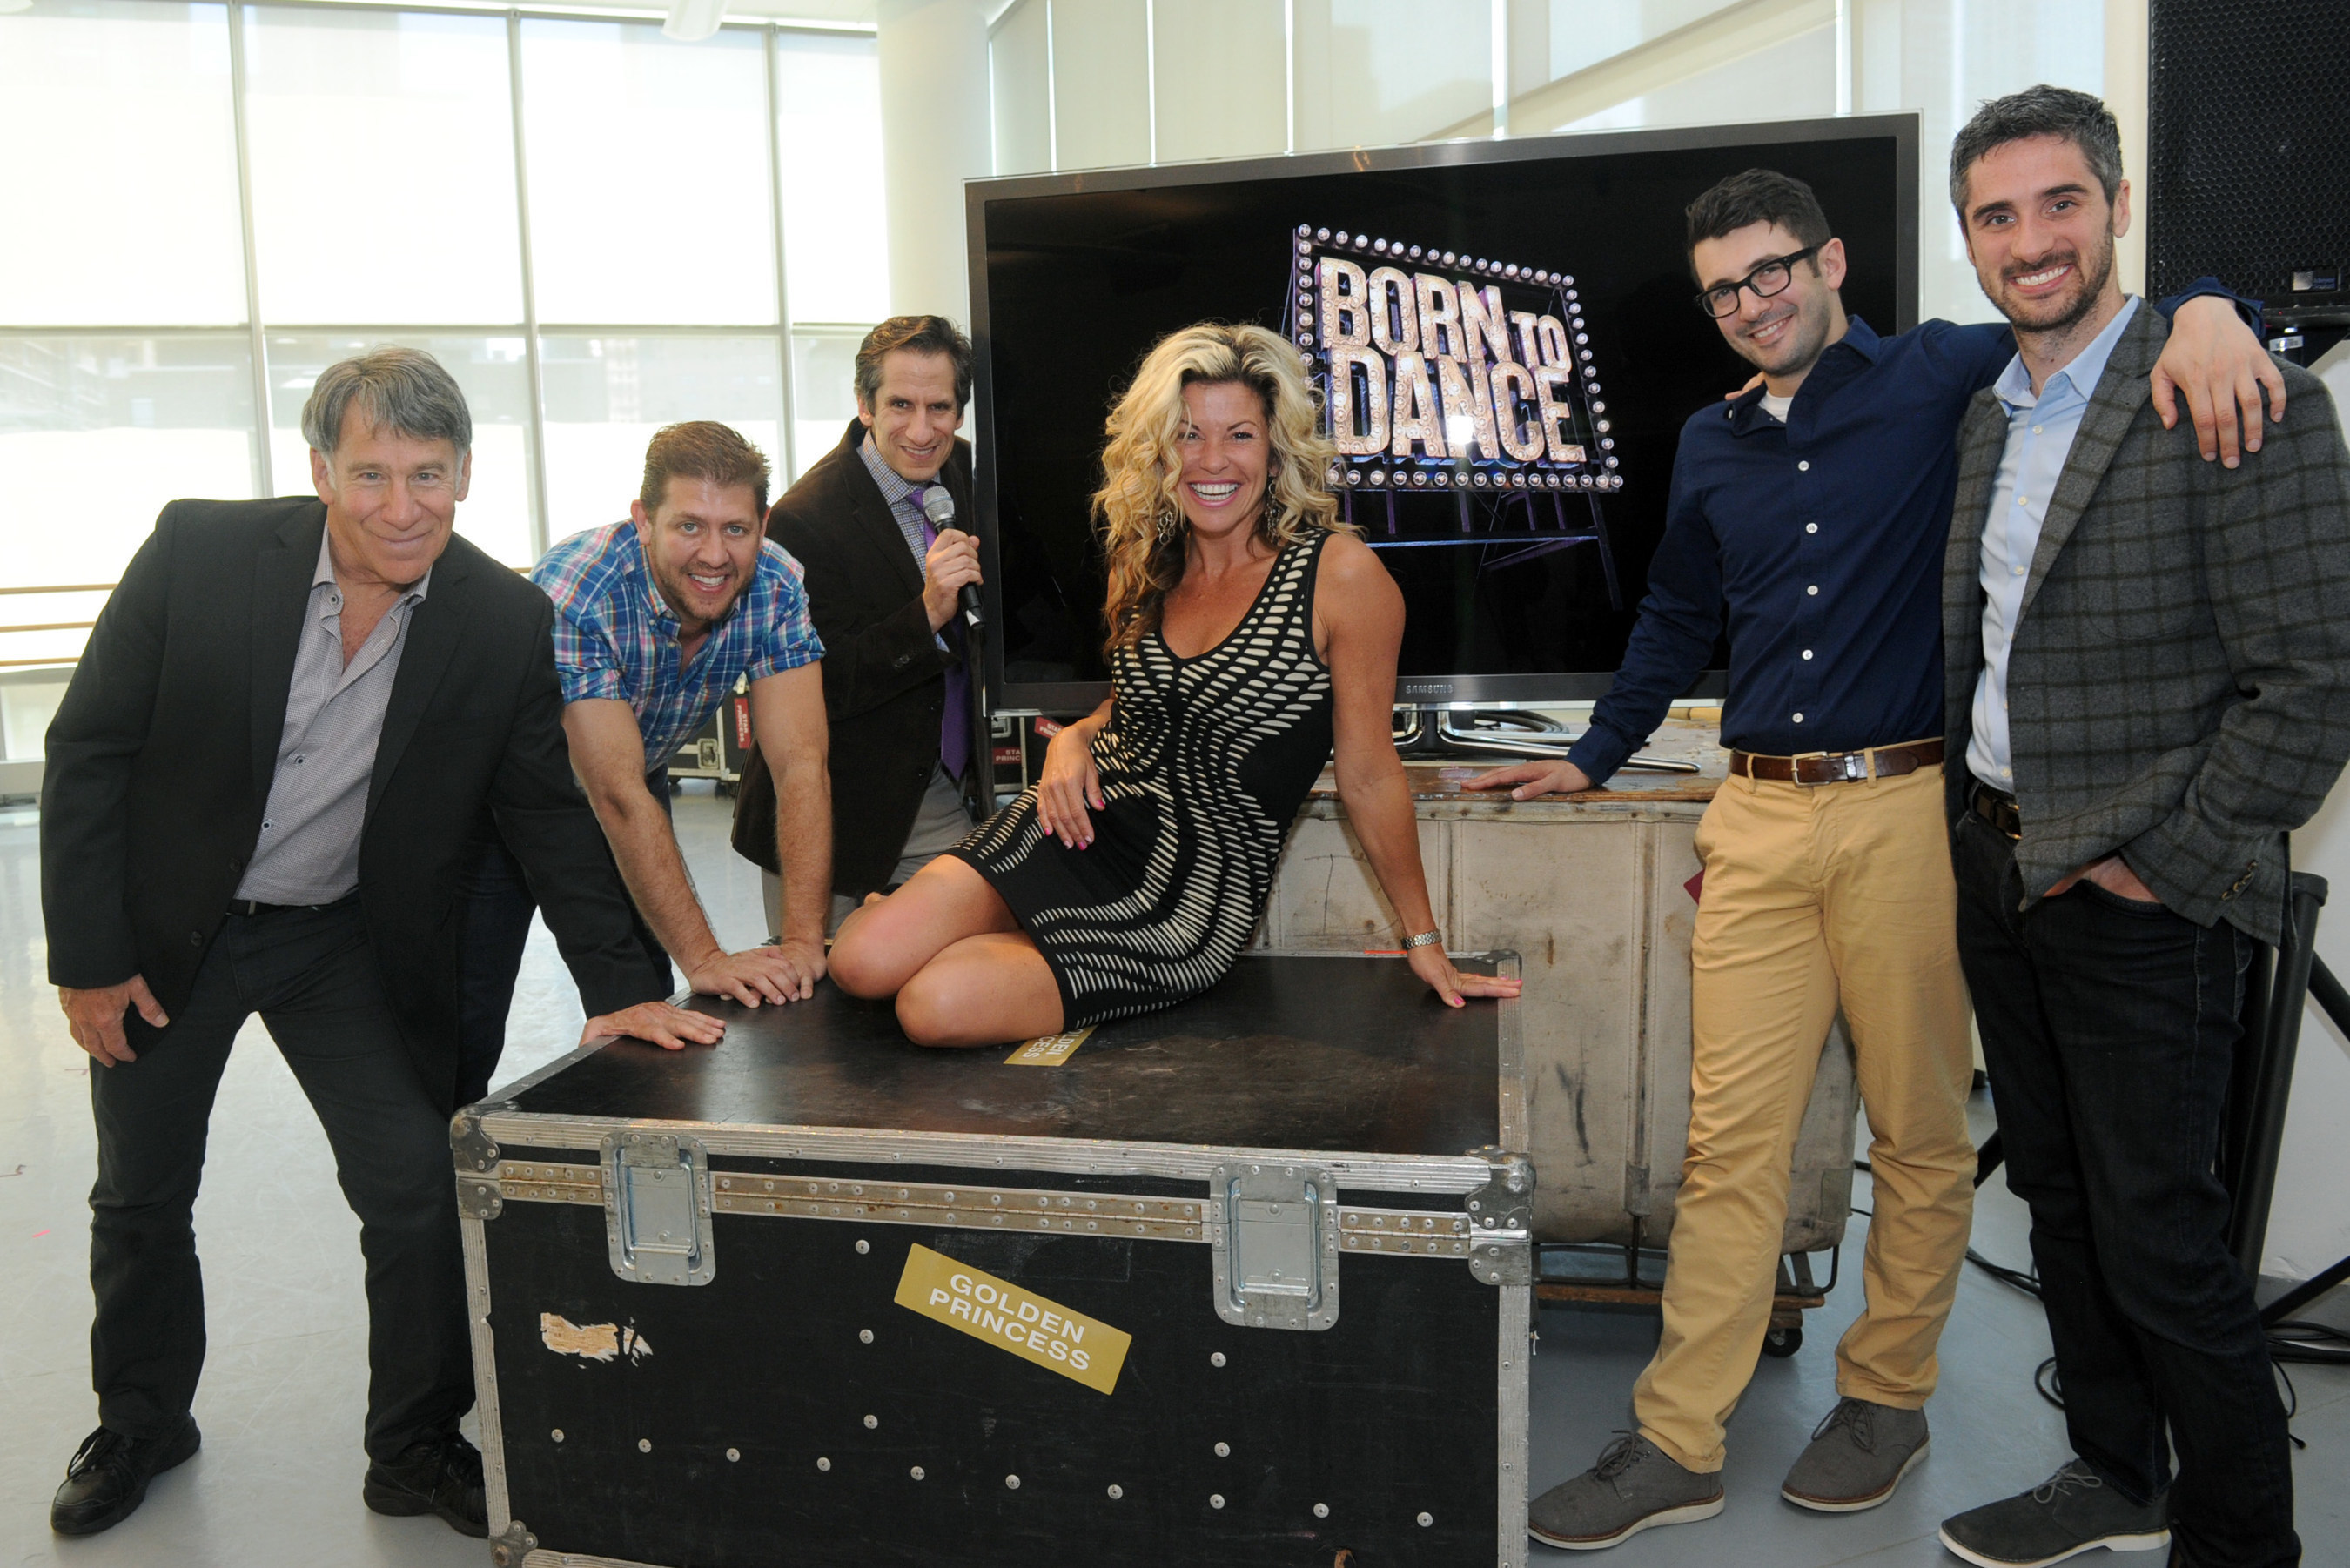 """The """"Born to Dance"""" creative team, Stephen Schwartz, Daniel C. Levine (far left) with Al Blackstone and Bryan Perri (far right) were joined by professional dancer Rachelle Rak and Sirius XM """"On Broadway"""" radio host Seth Rudetsky (center) at the preview for the newest musical production by Princess Cruises, Thursday, June 9, 2016, in New York."""